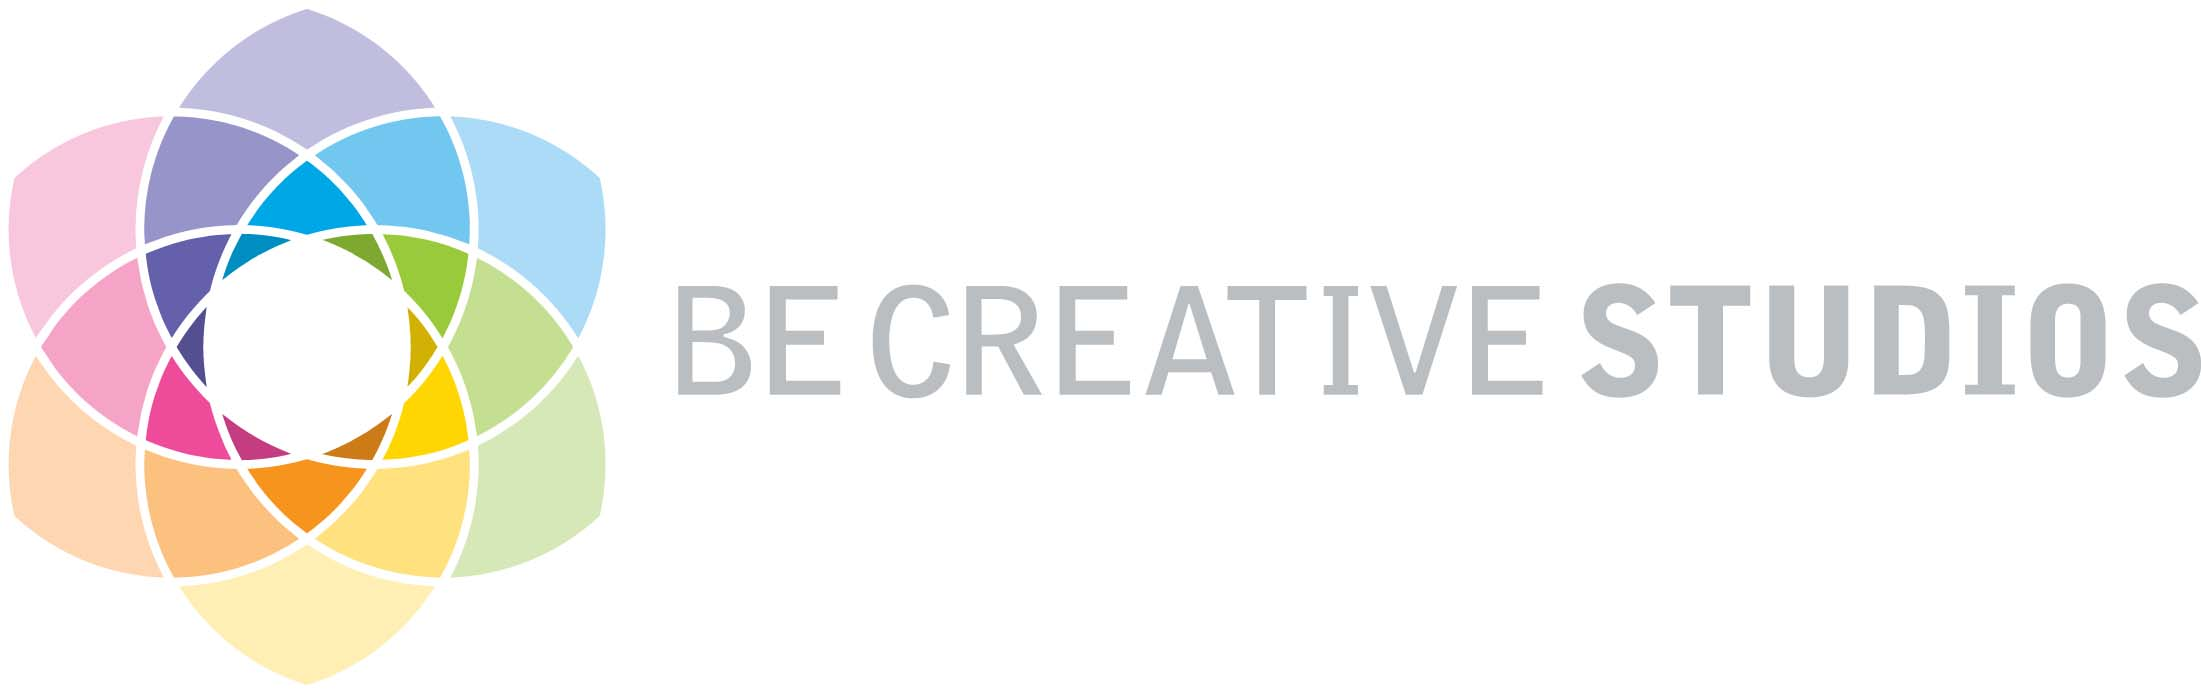 Be Creative Logo New.jpg